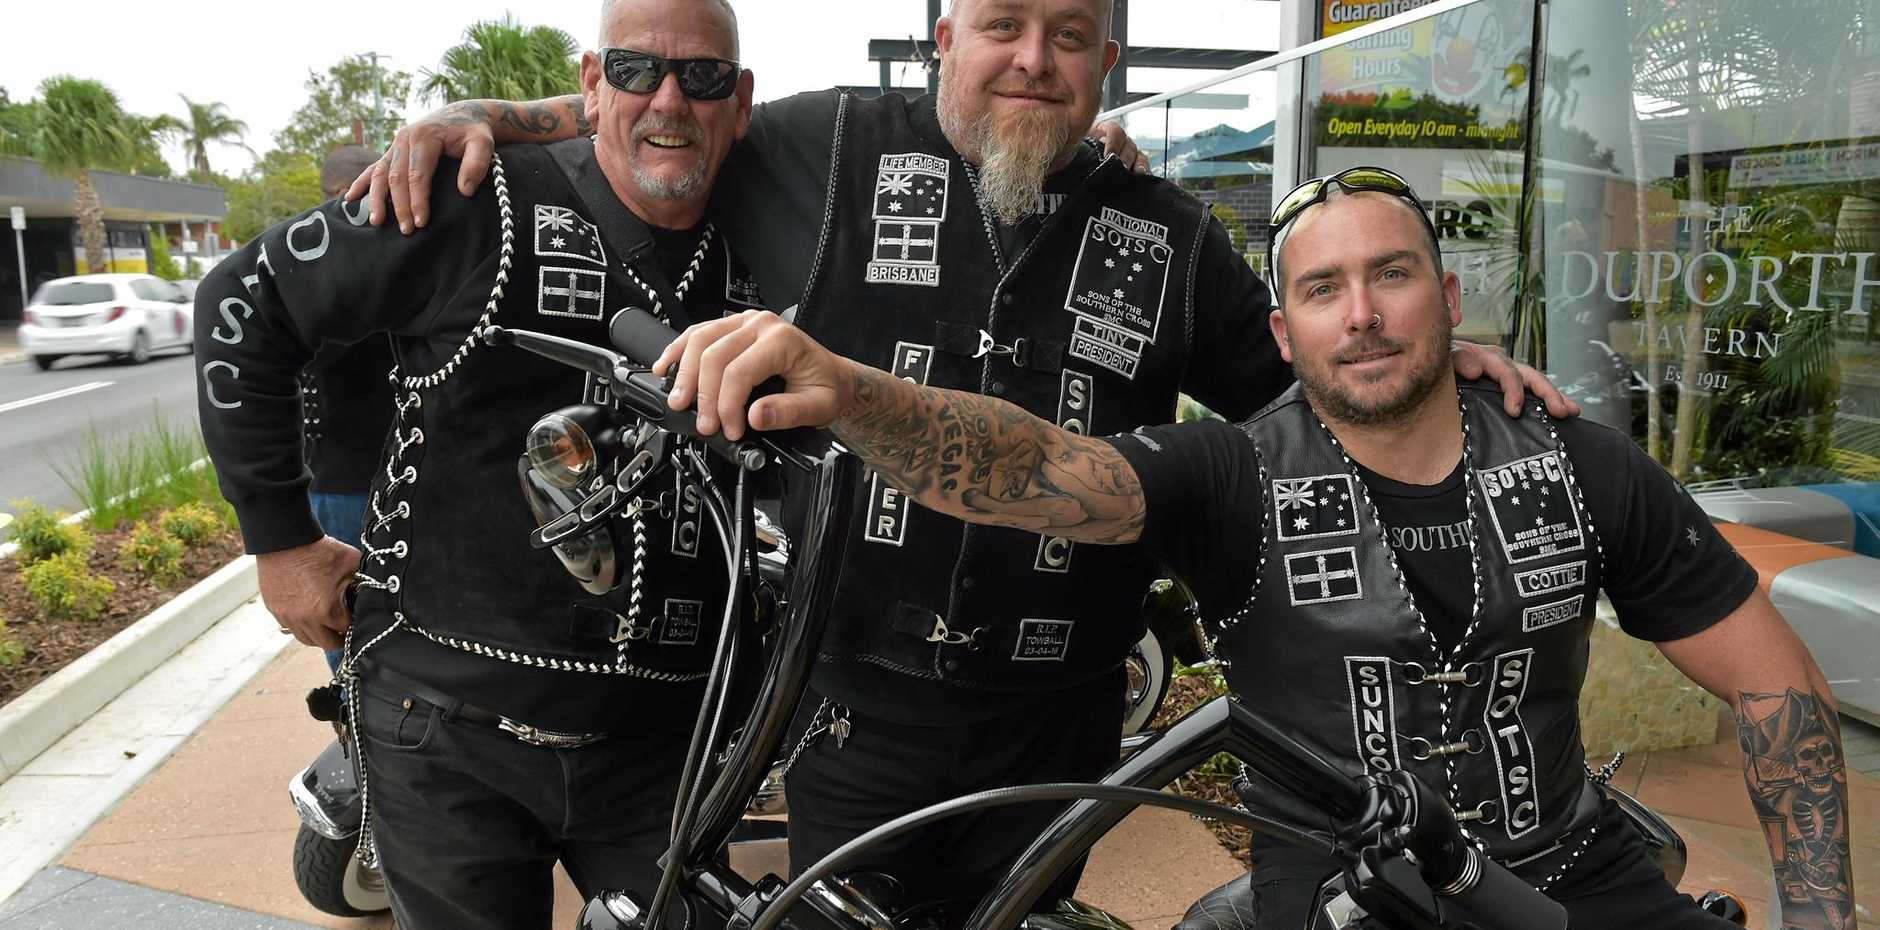 SUPPORT: Sons of the Southern Cross Motorcycle Club members prepare for Lyla's charity ride. Steve Papa Bear, Tiny and Cottie at the Duporth Tavern, the final stop of Sunday's ride.